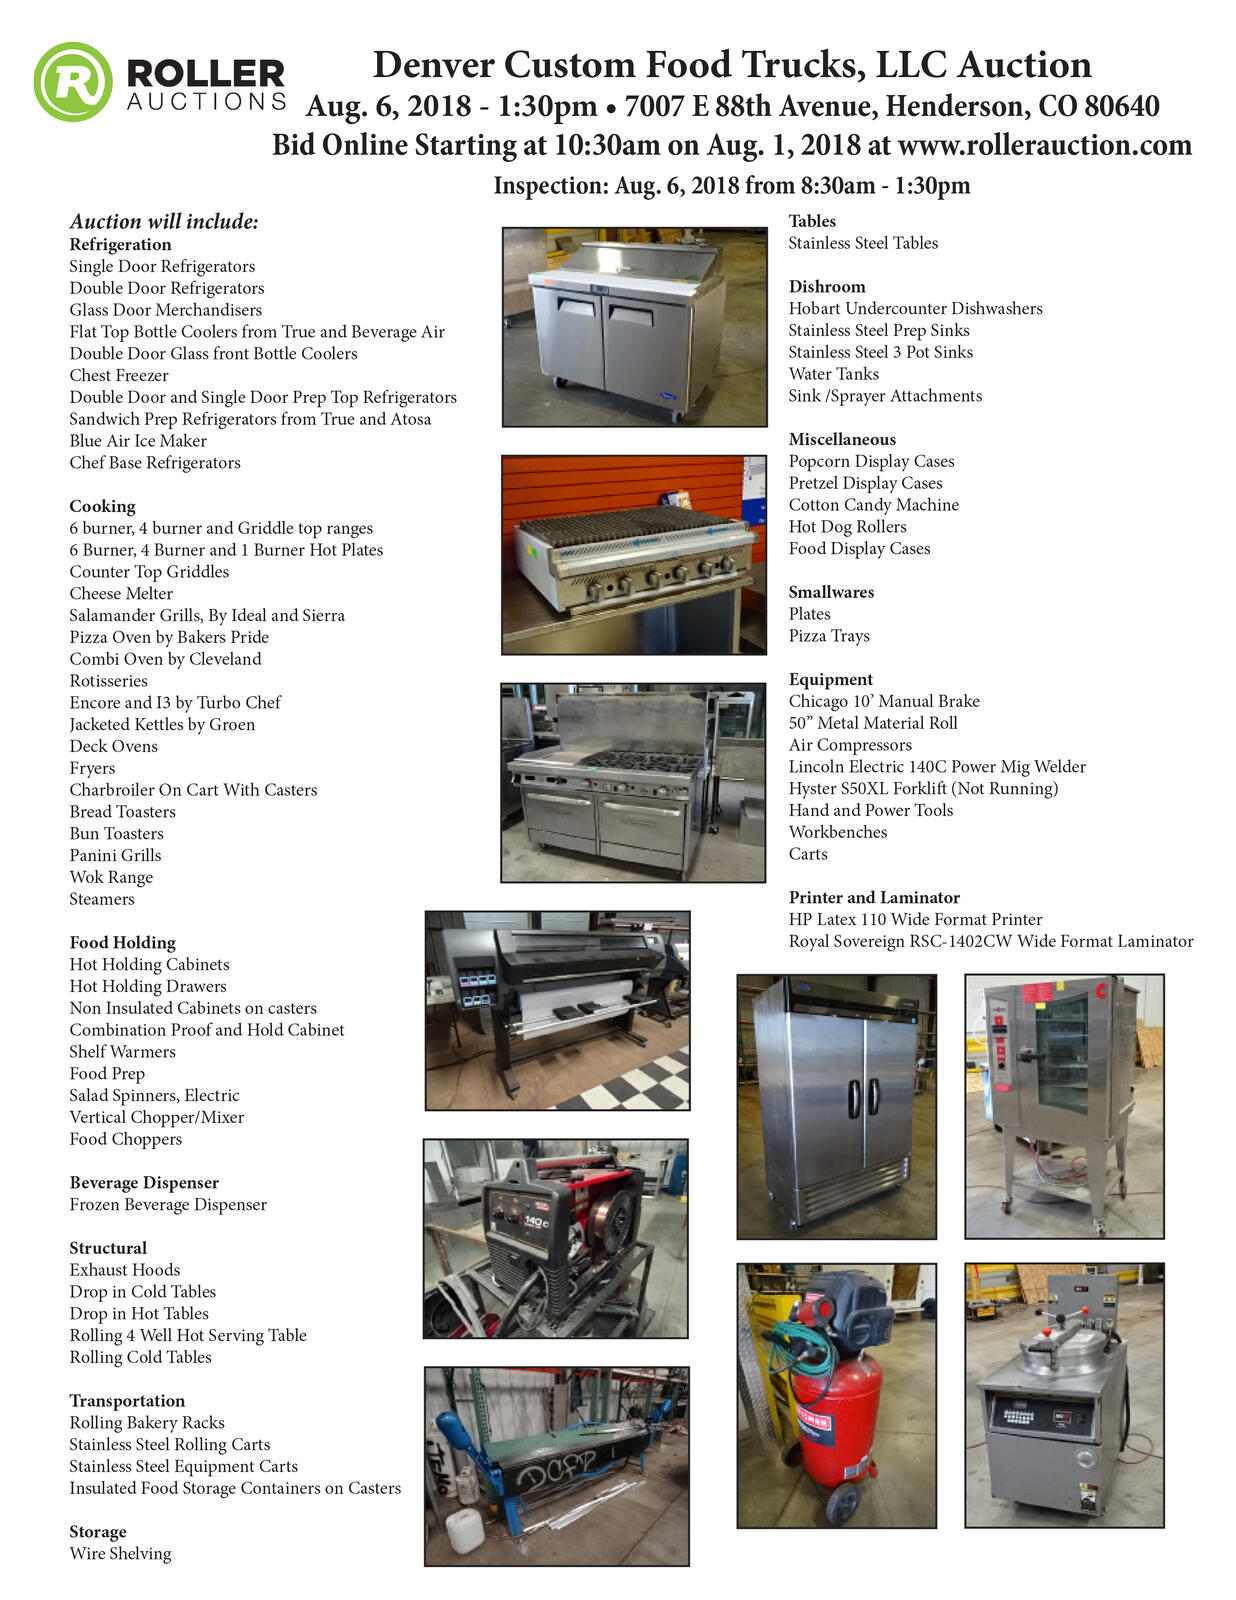 Seized Food Truck Equipment To Be Auctioned Off On August 6 City Of Hyster 30 Forklift Wiring Diagram Commerce Nextdoor